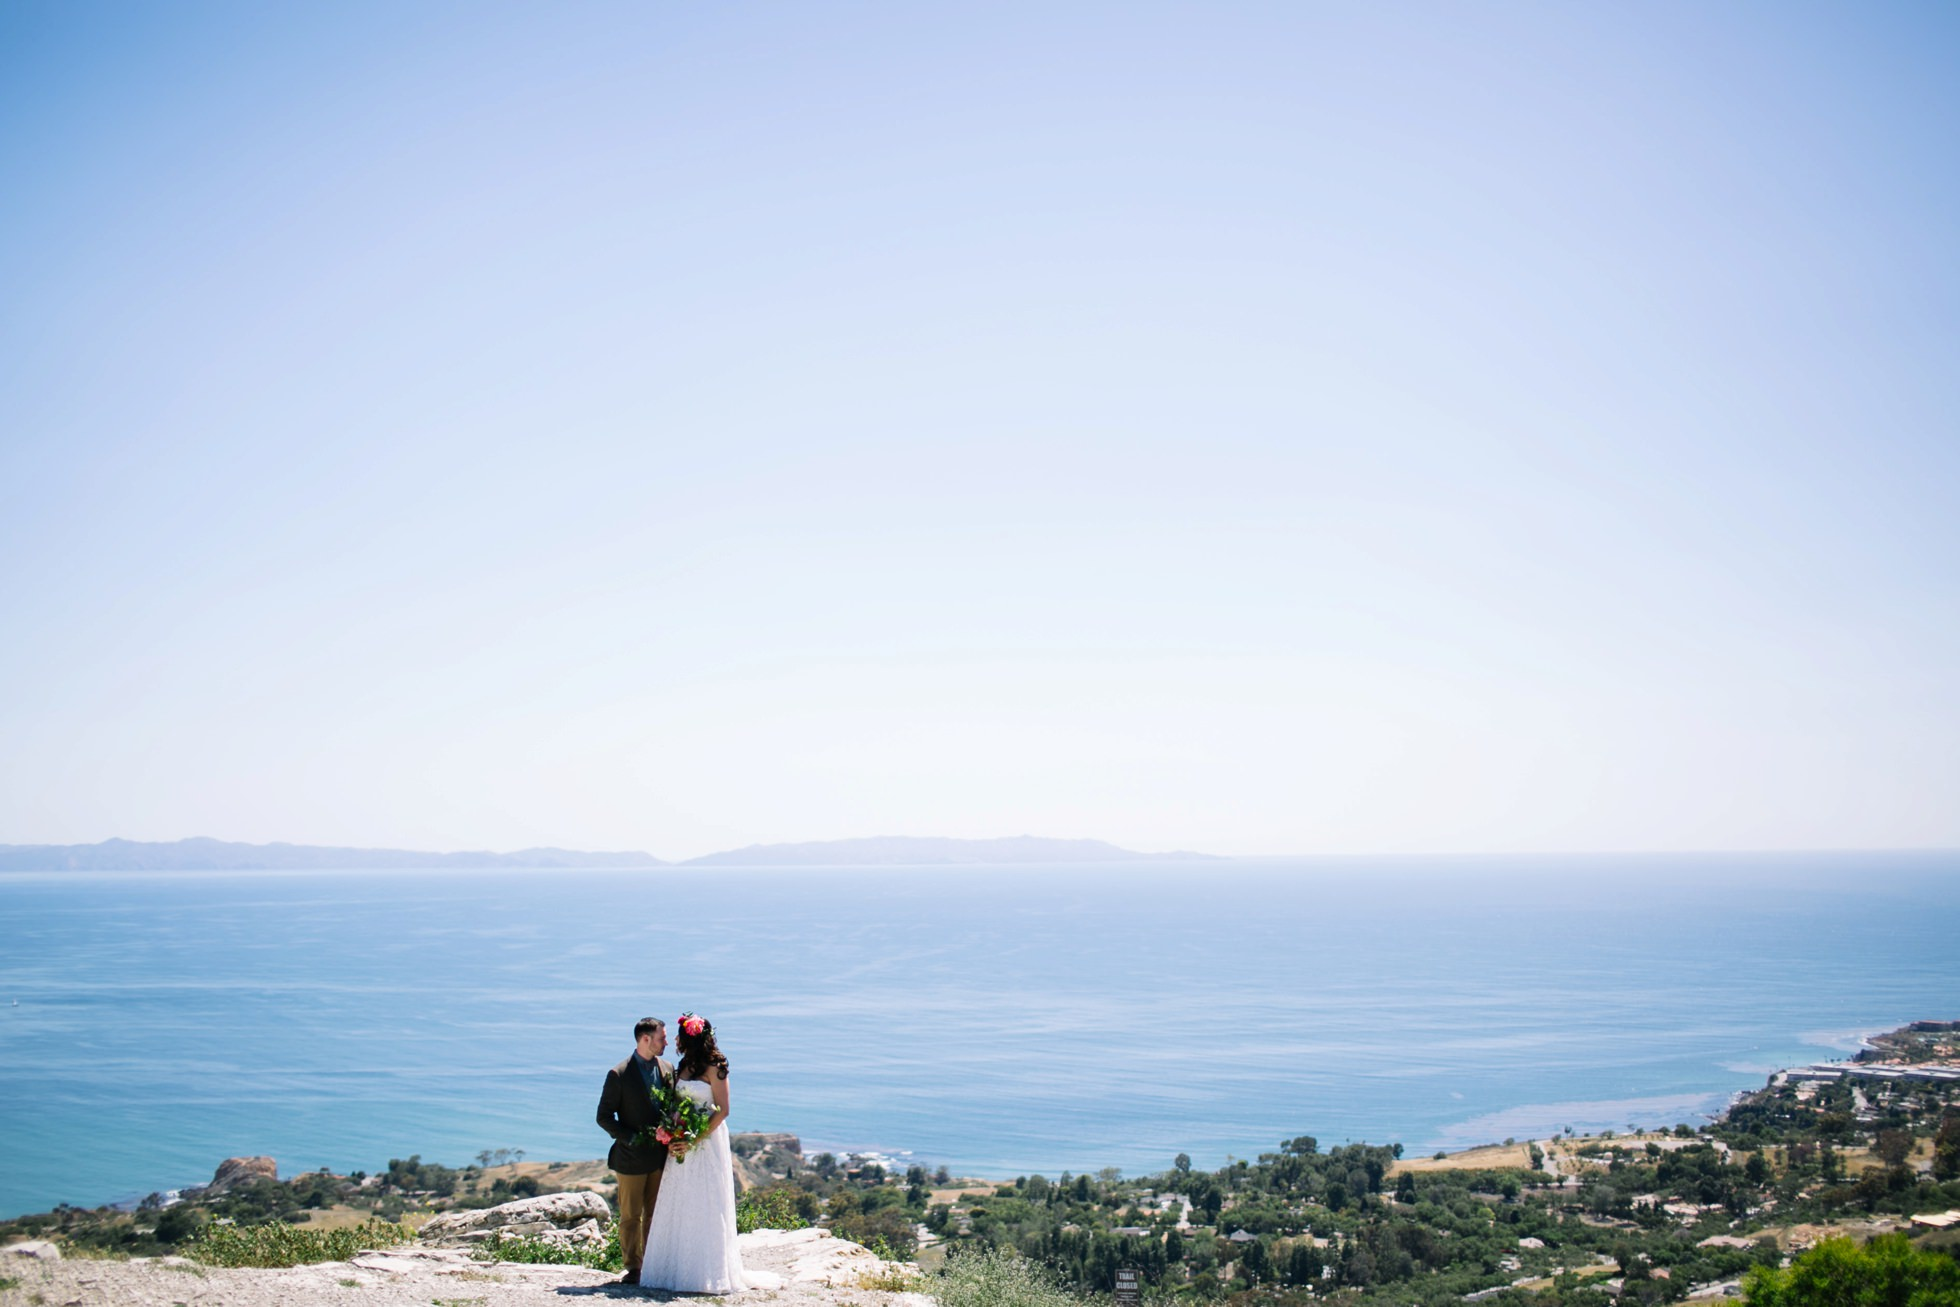 Palos Verdes Southern California Destination Wedding | brittneyraine.com 0026